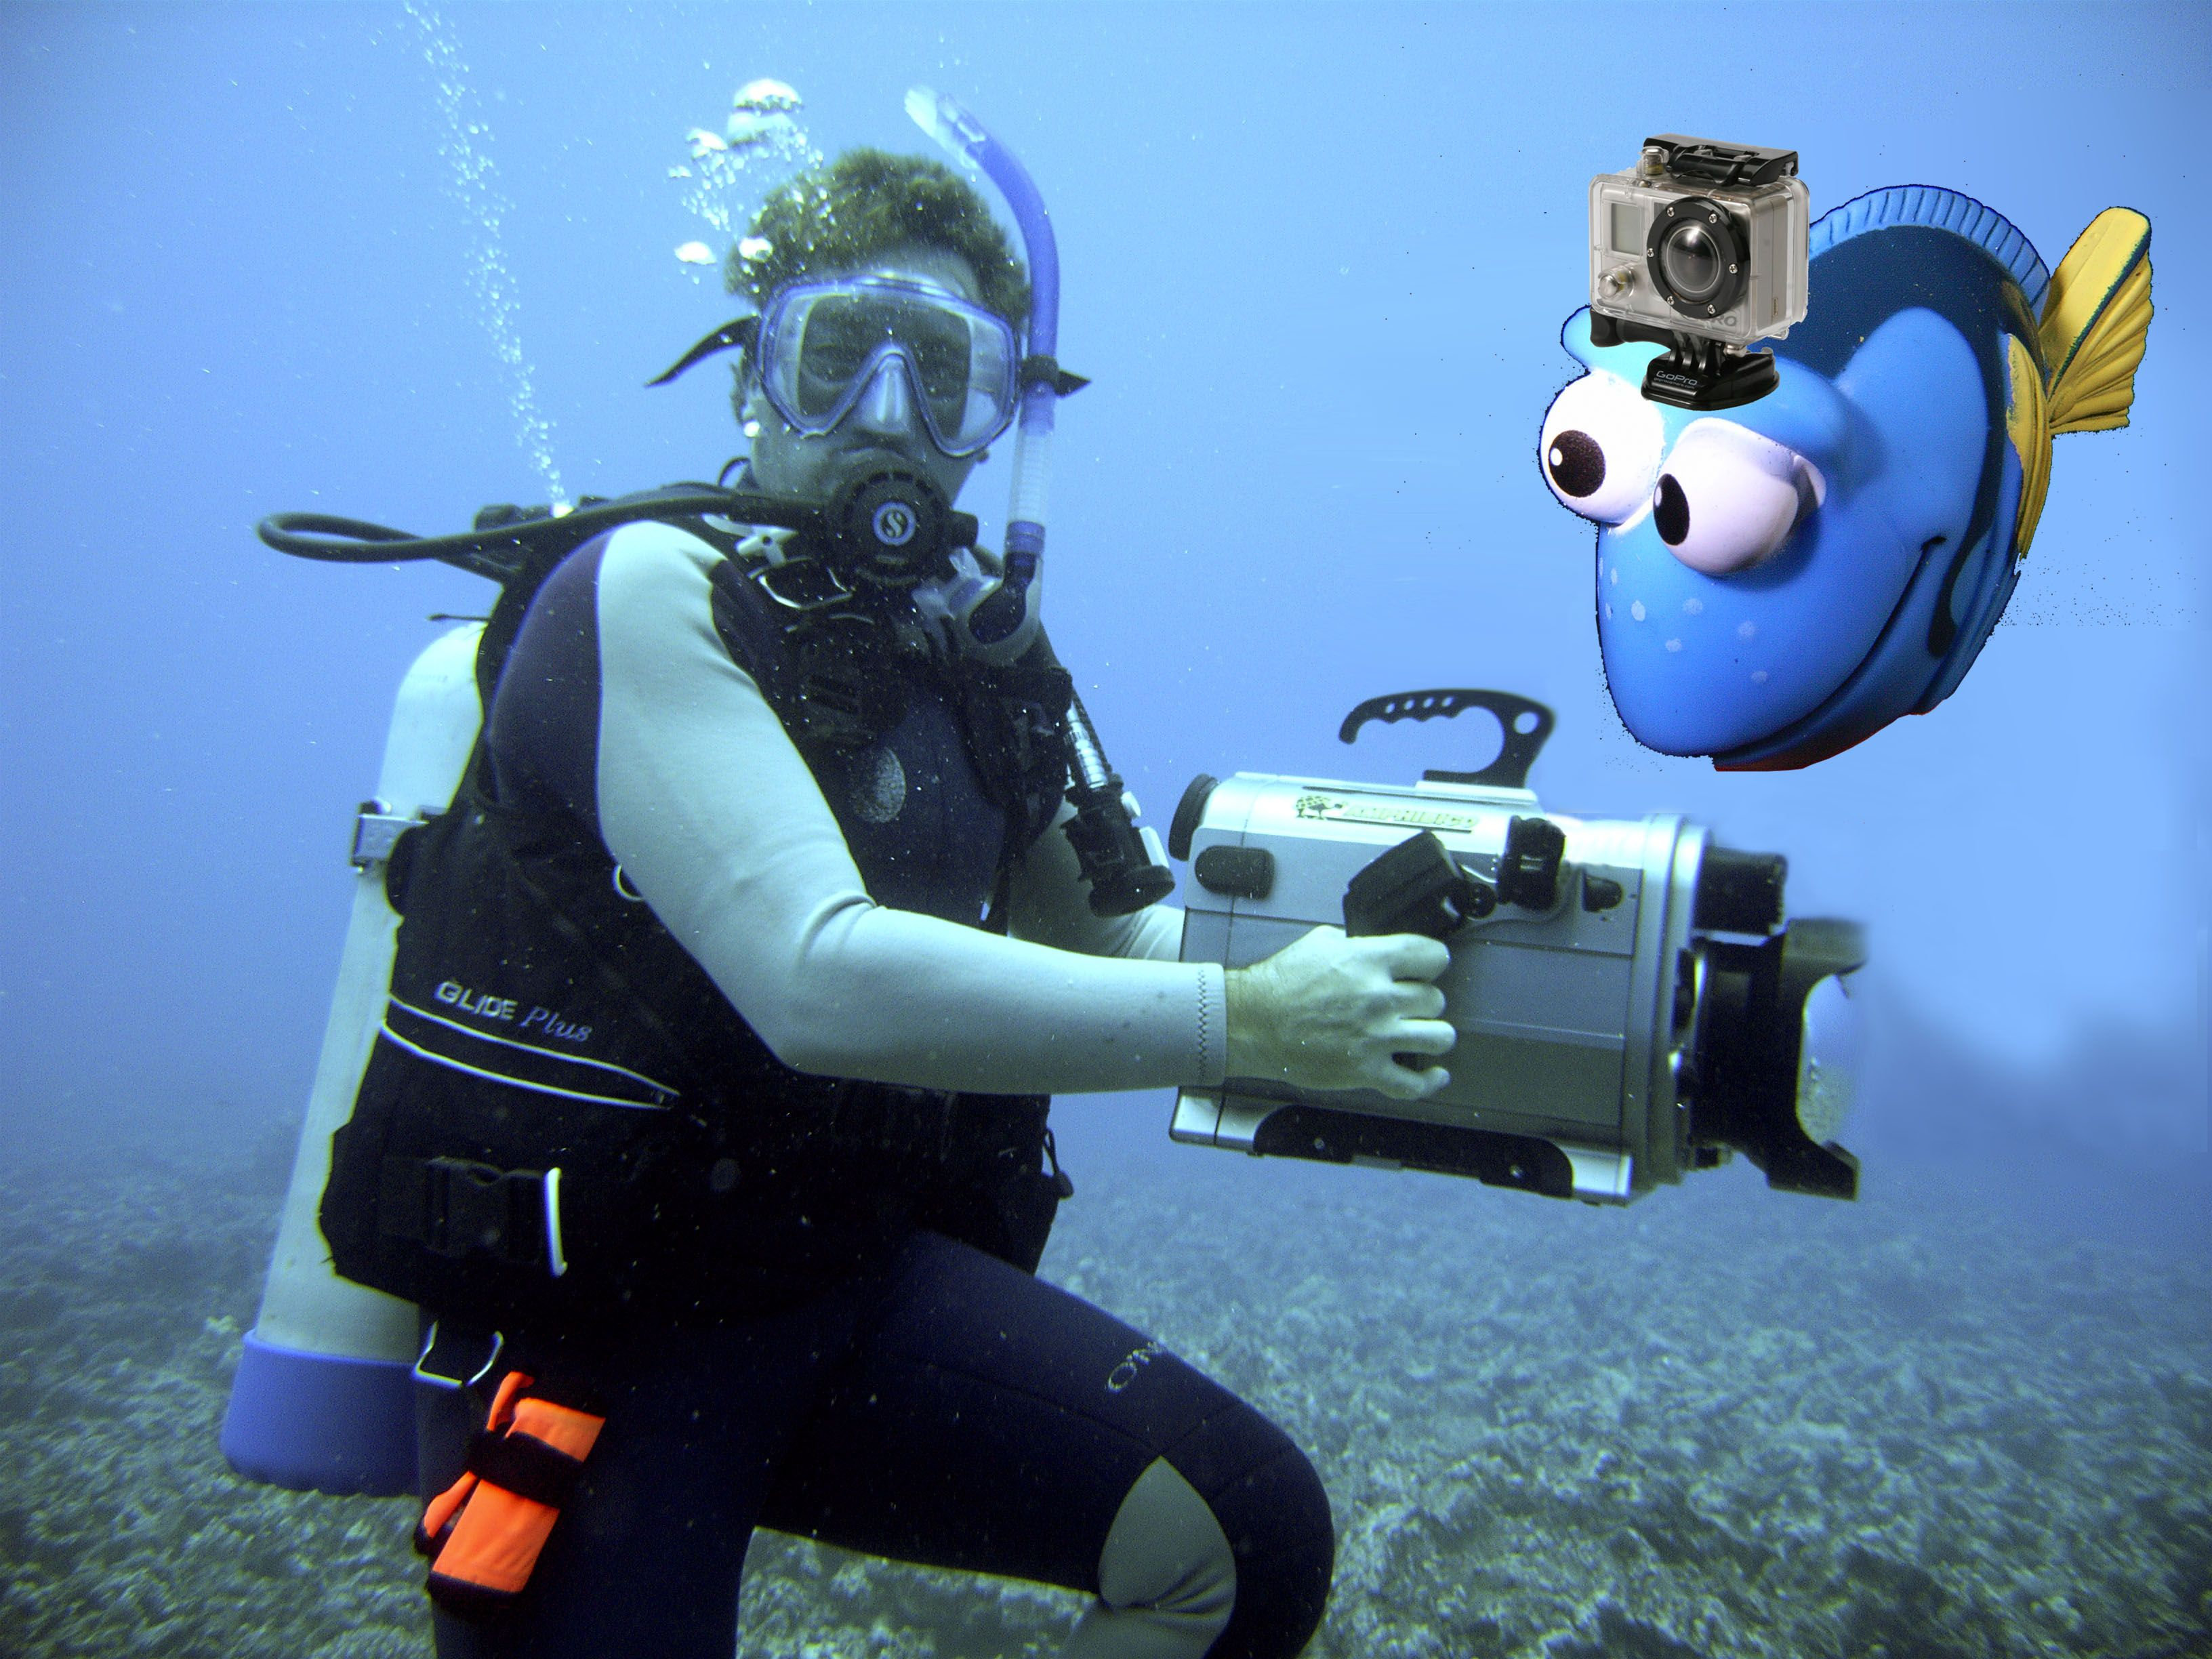 Bill and a friend with his GoPro!